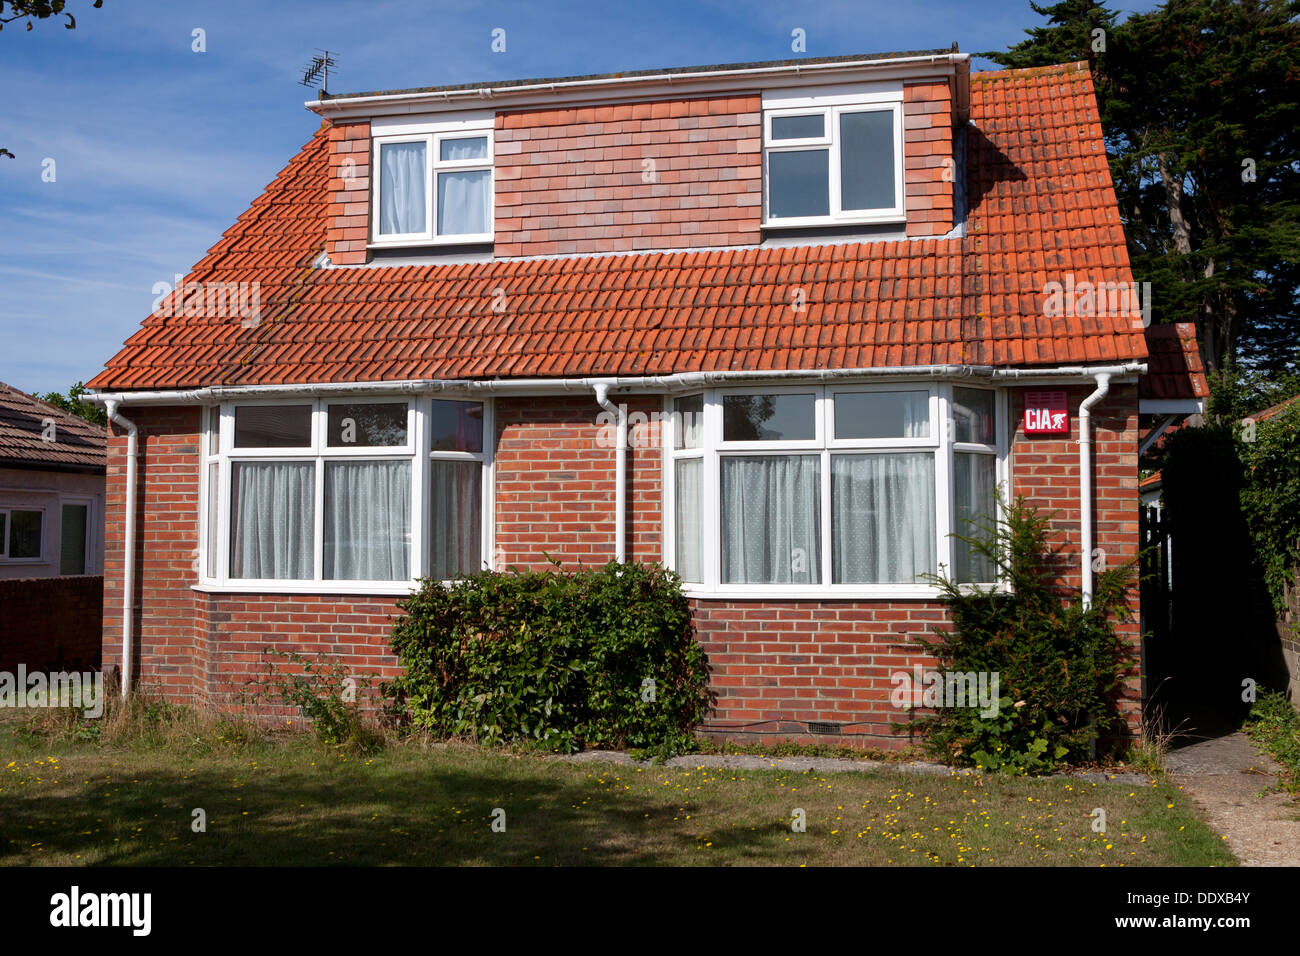 Former bungalow that has been extended to allow upstairs accommodation - Stock Image